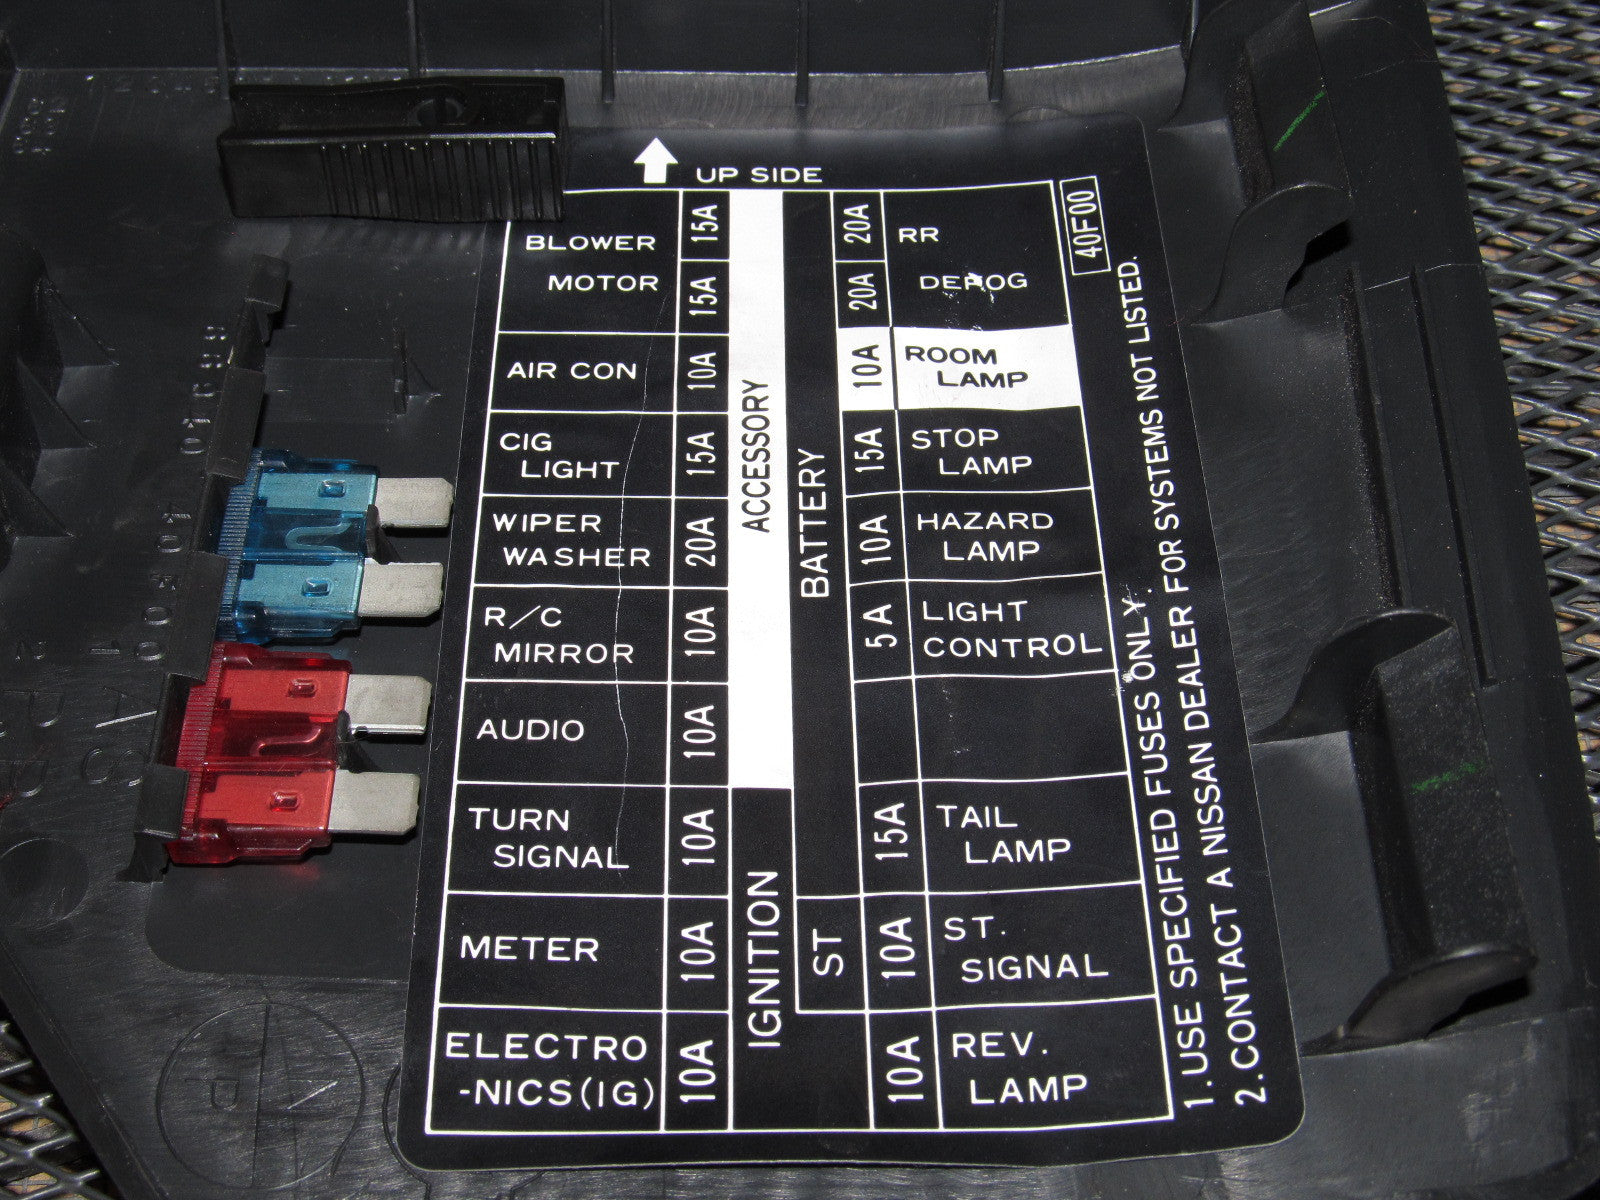 Toyota Supra Mk3 Fuse Box Diagram 94 89 Schematic Wiring Diagrams U2022 2006 Corolla 1994